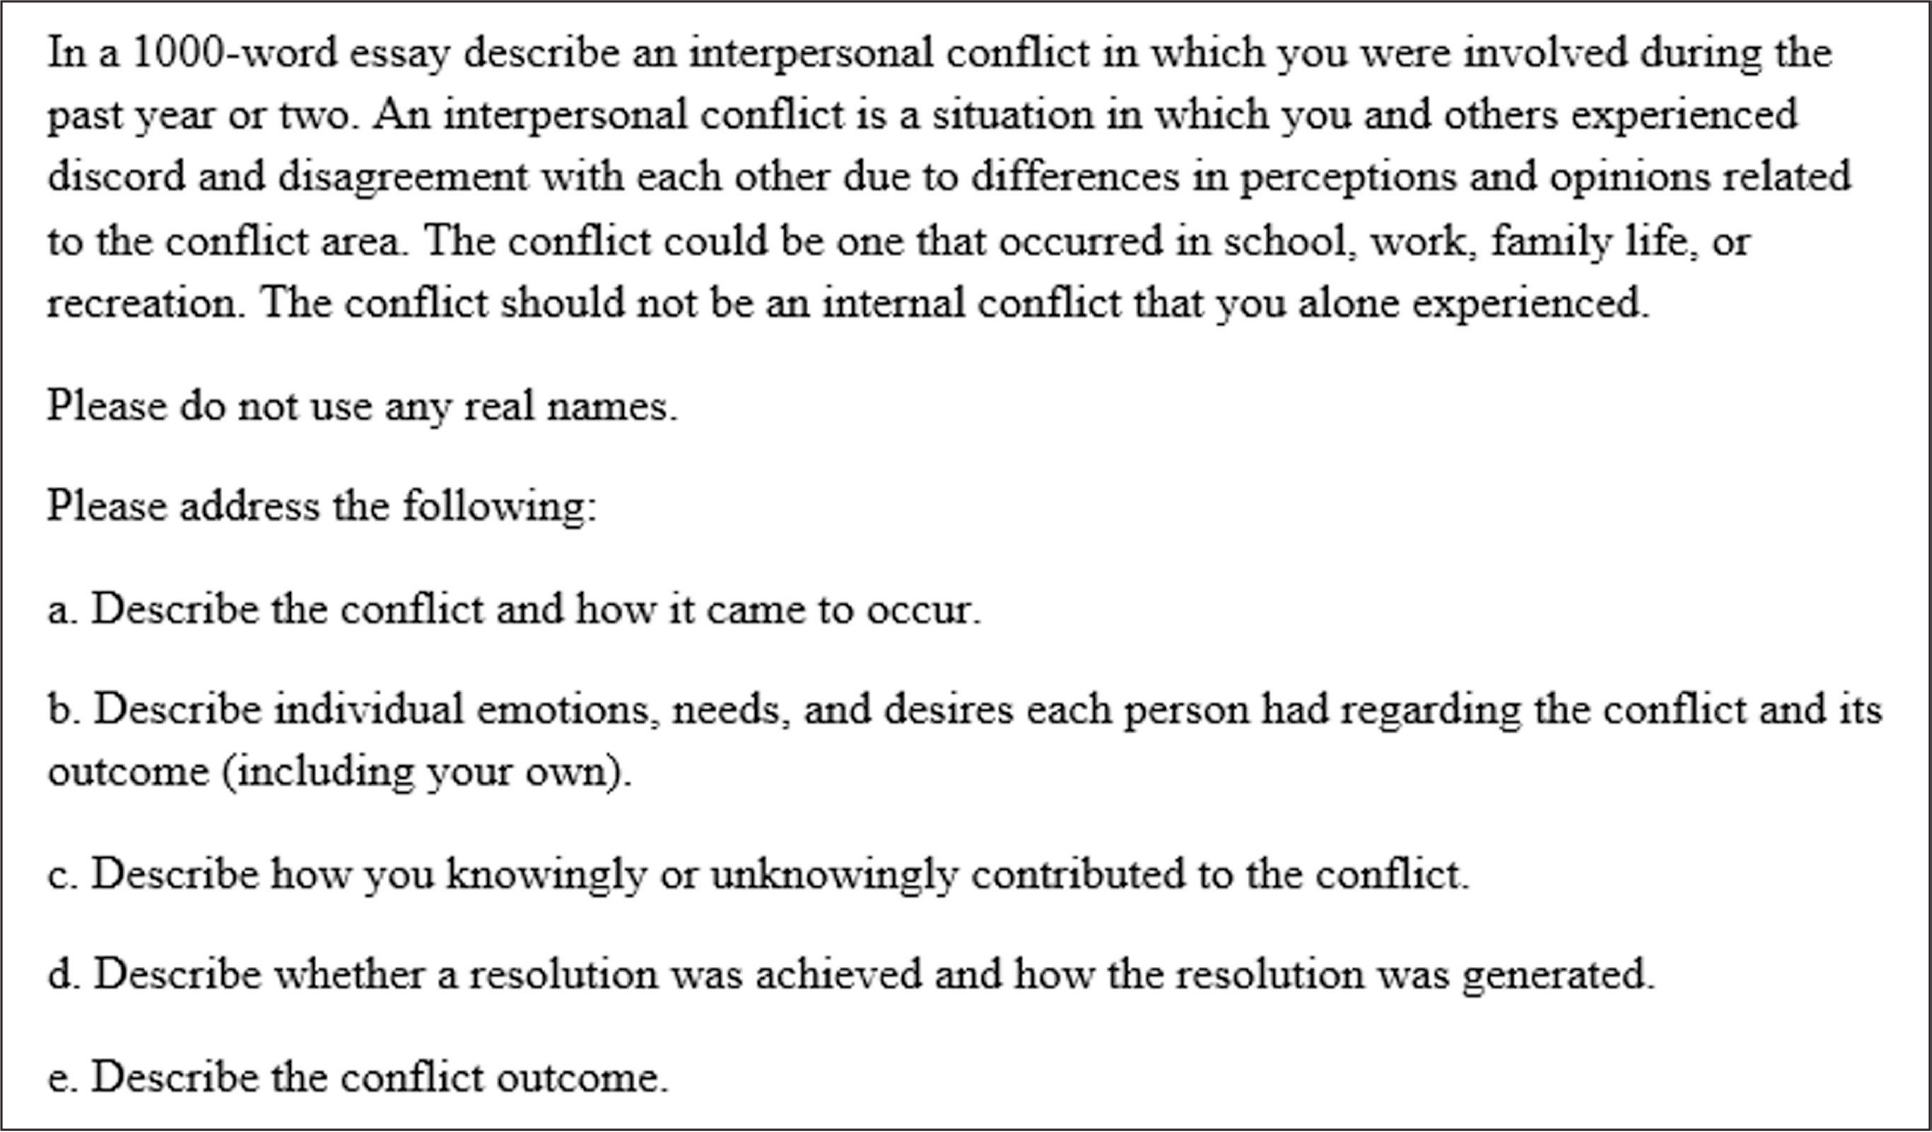 Instructions for the Emotional Intelligence Admission Essay.